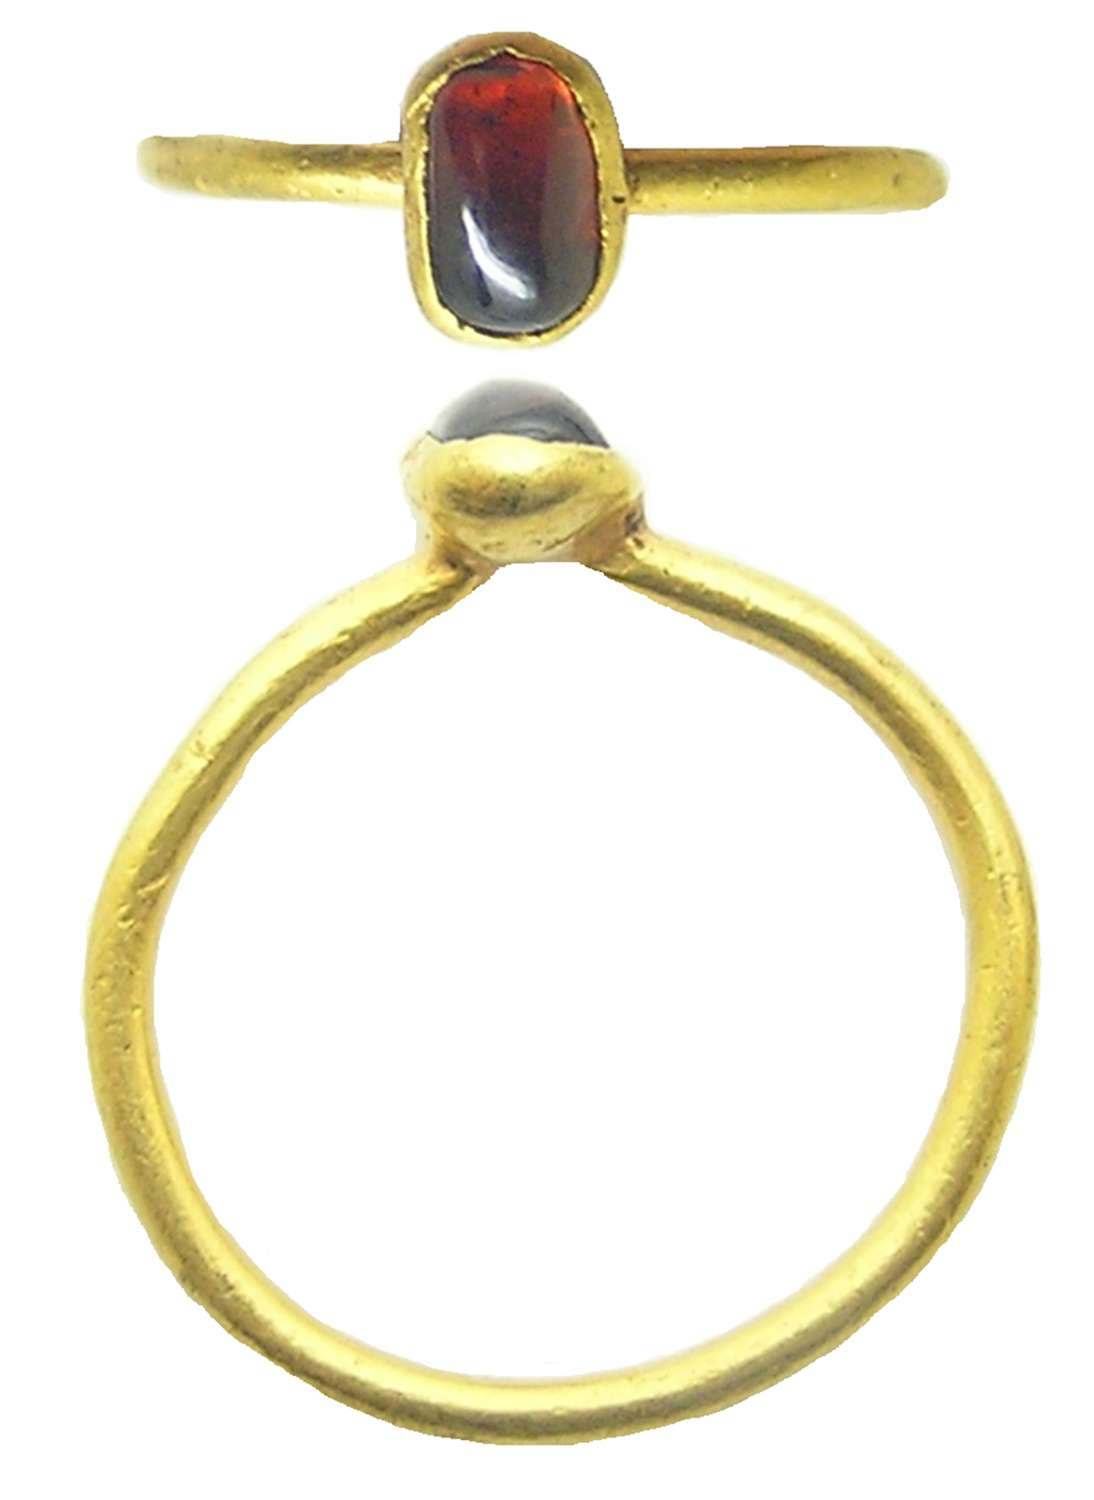 Medieval gold and almandine garnet finger ring